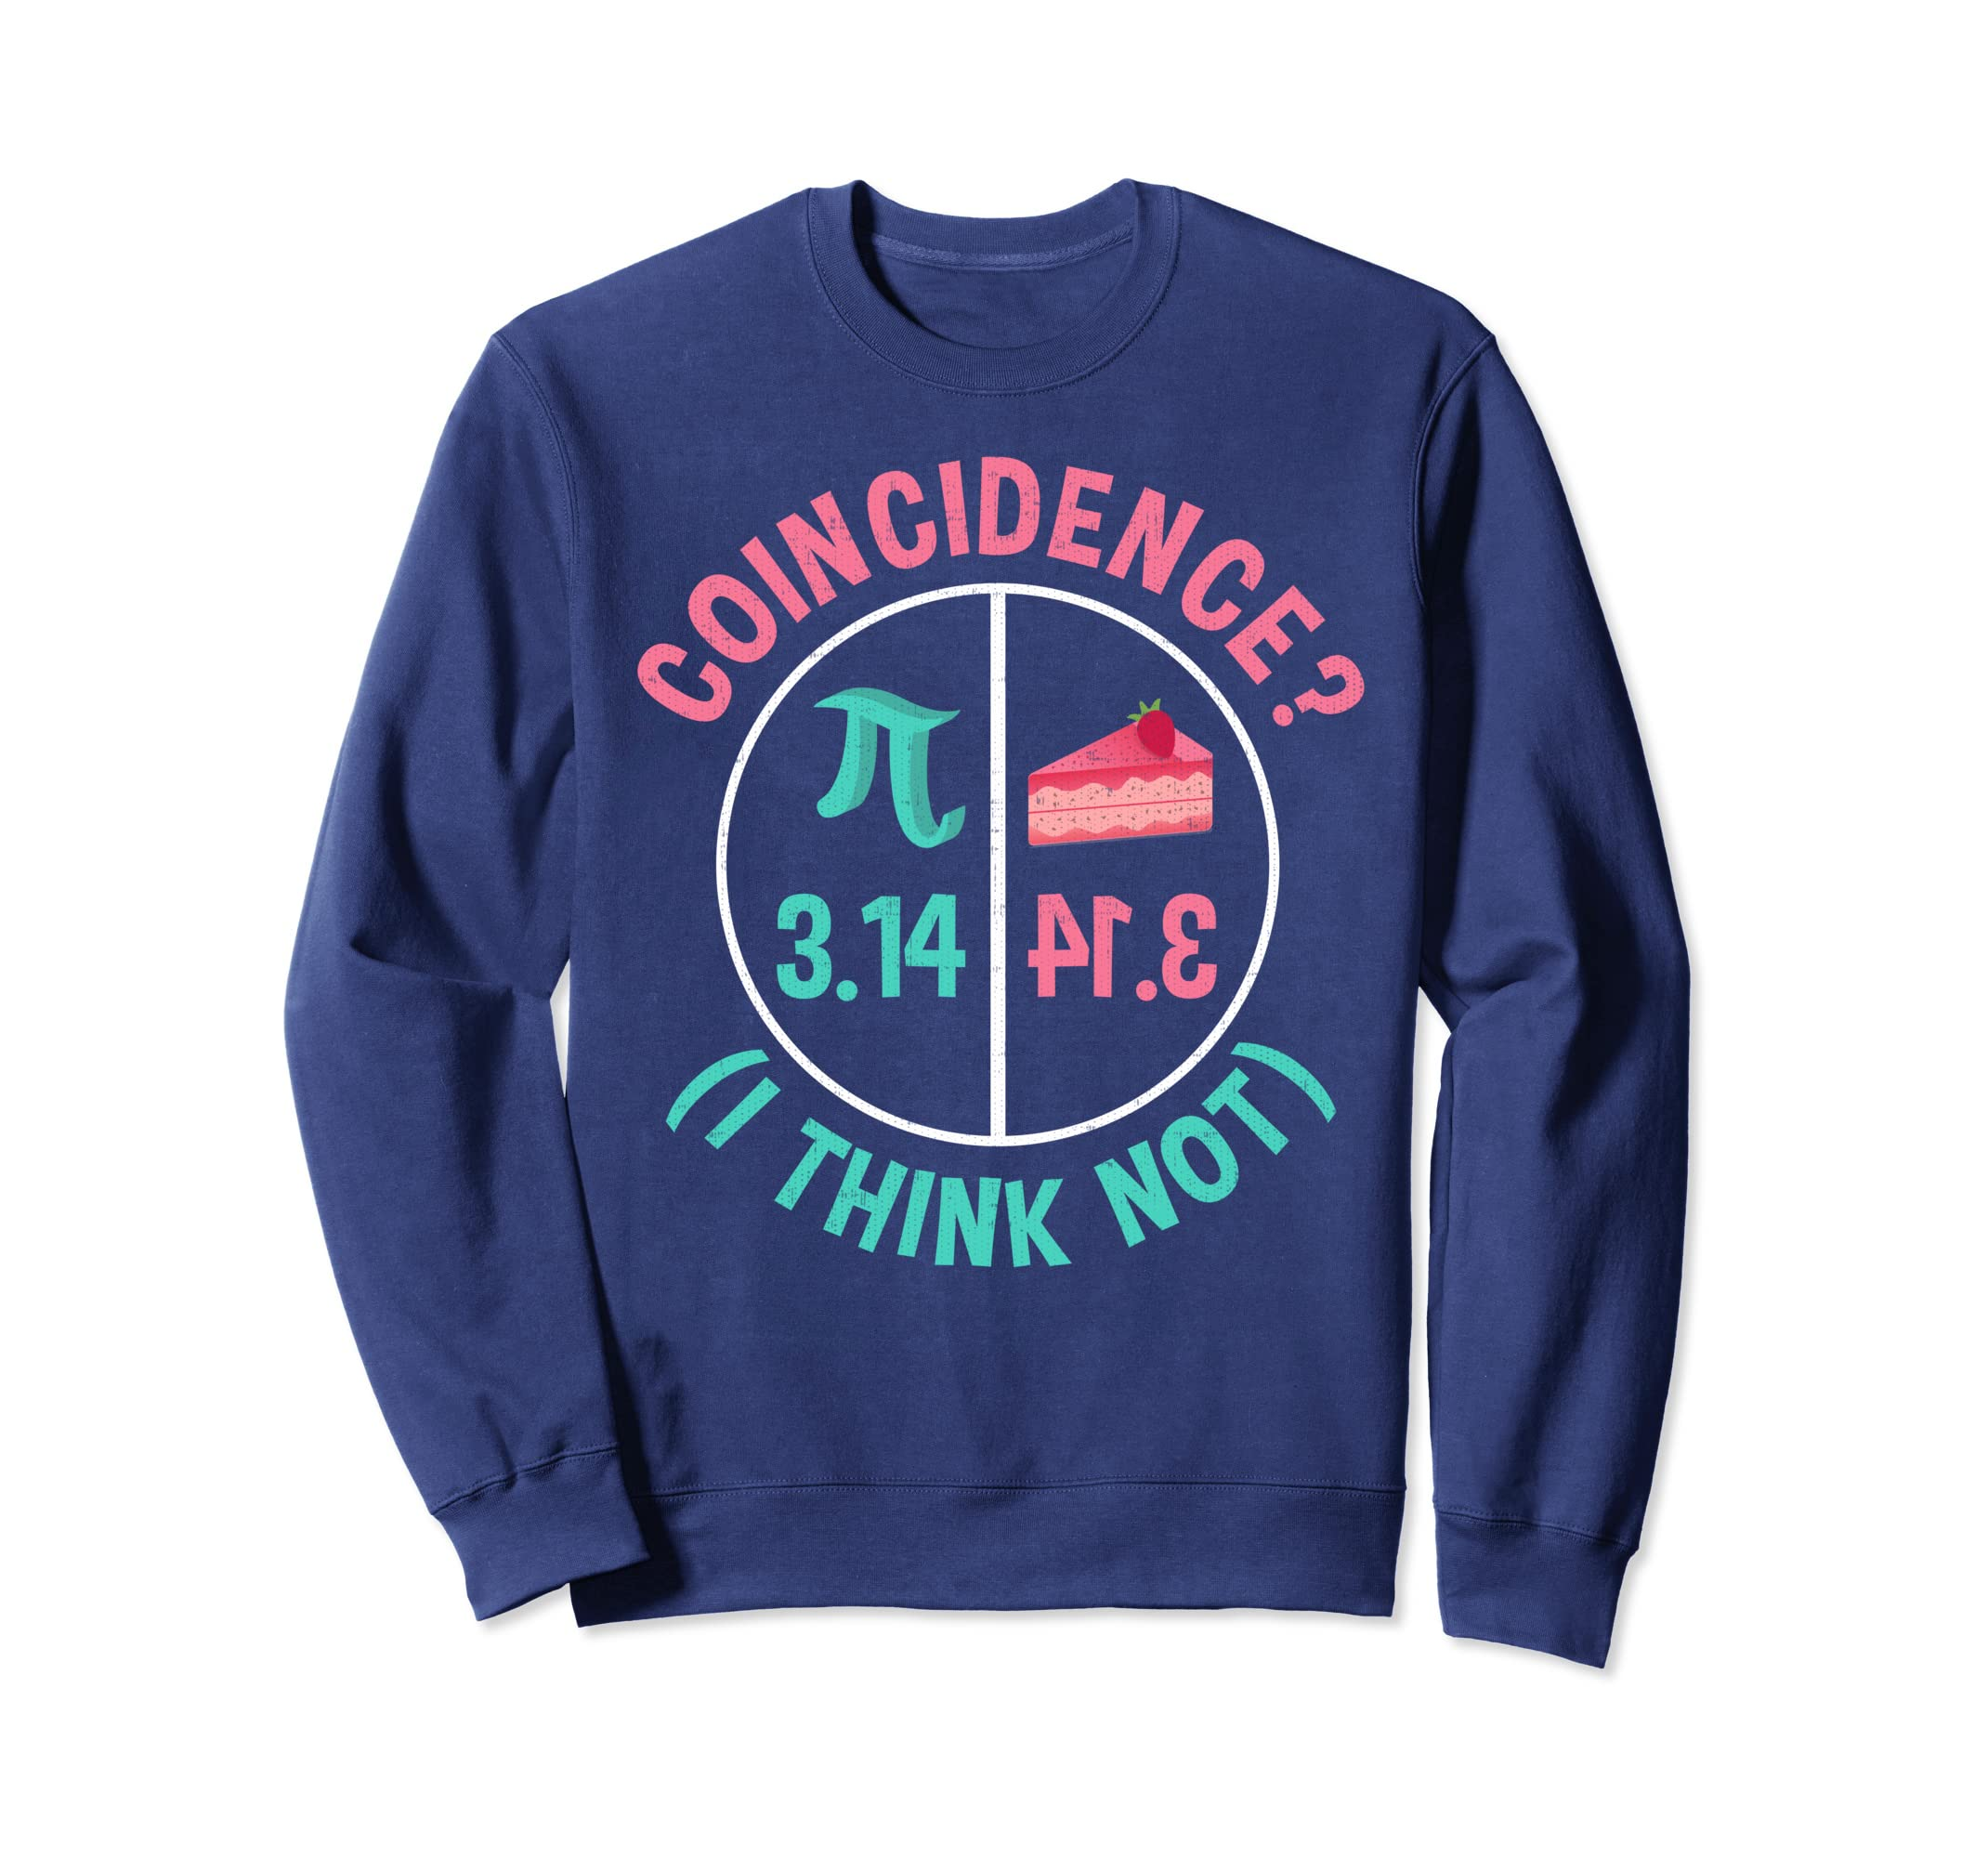 Pi Equals Pie Sweatshirt For Pi Day Celebrated On 3.14-Teehay